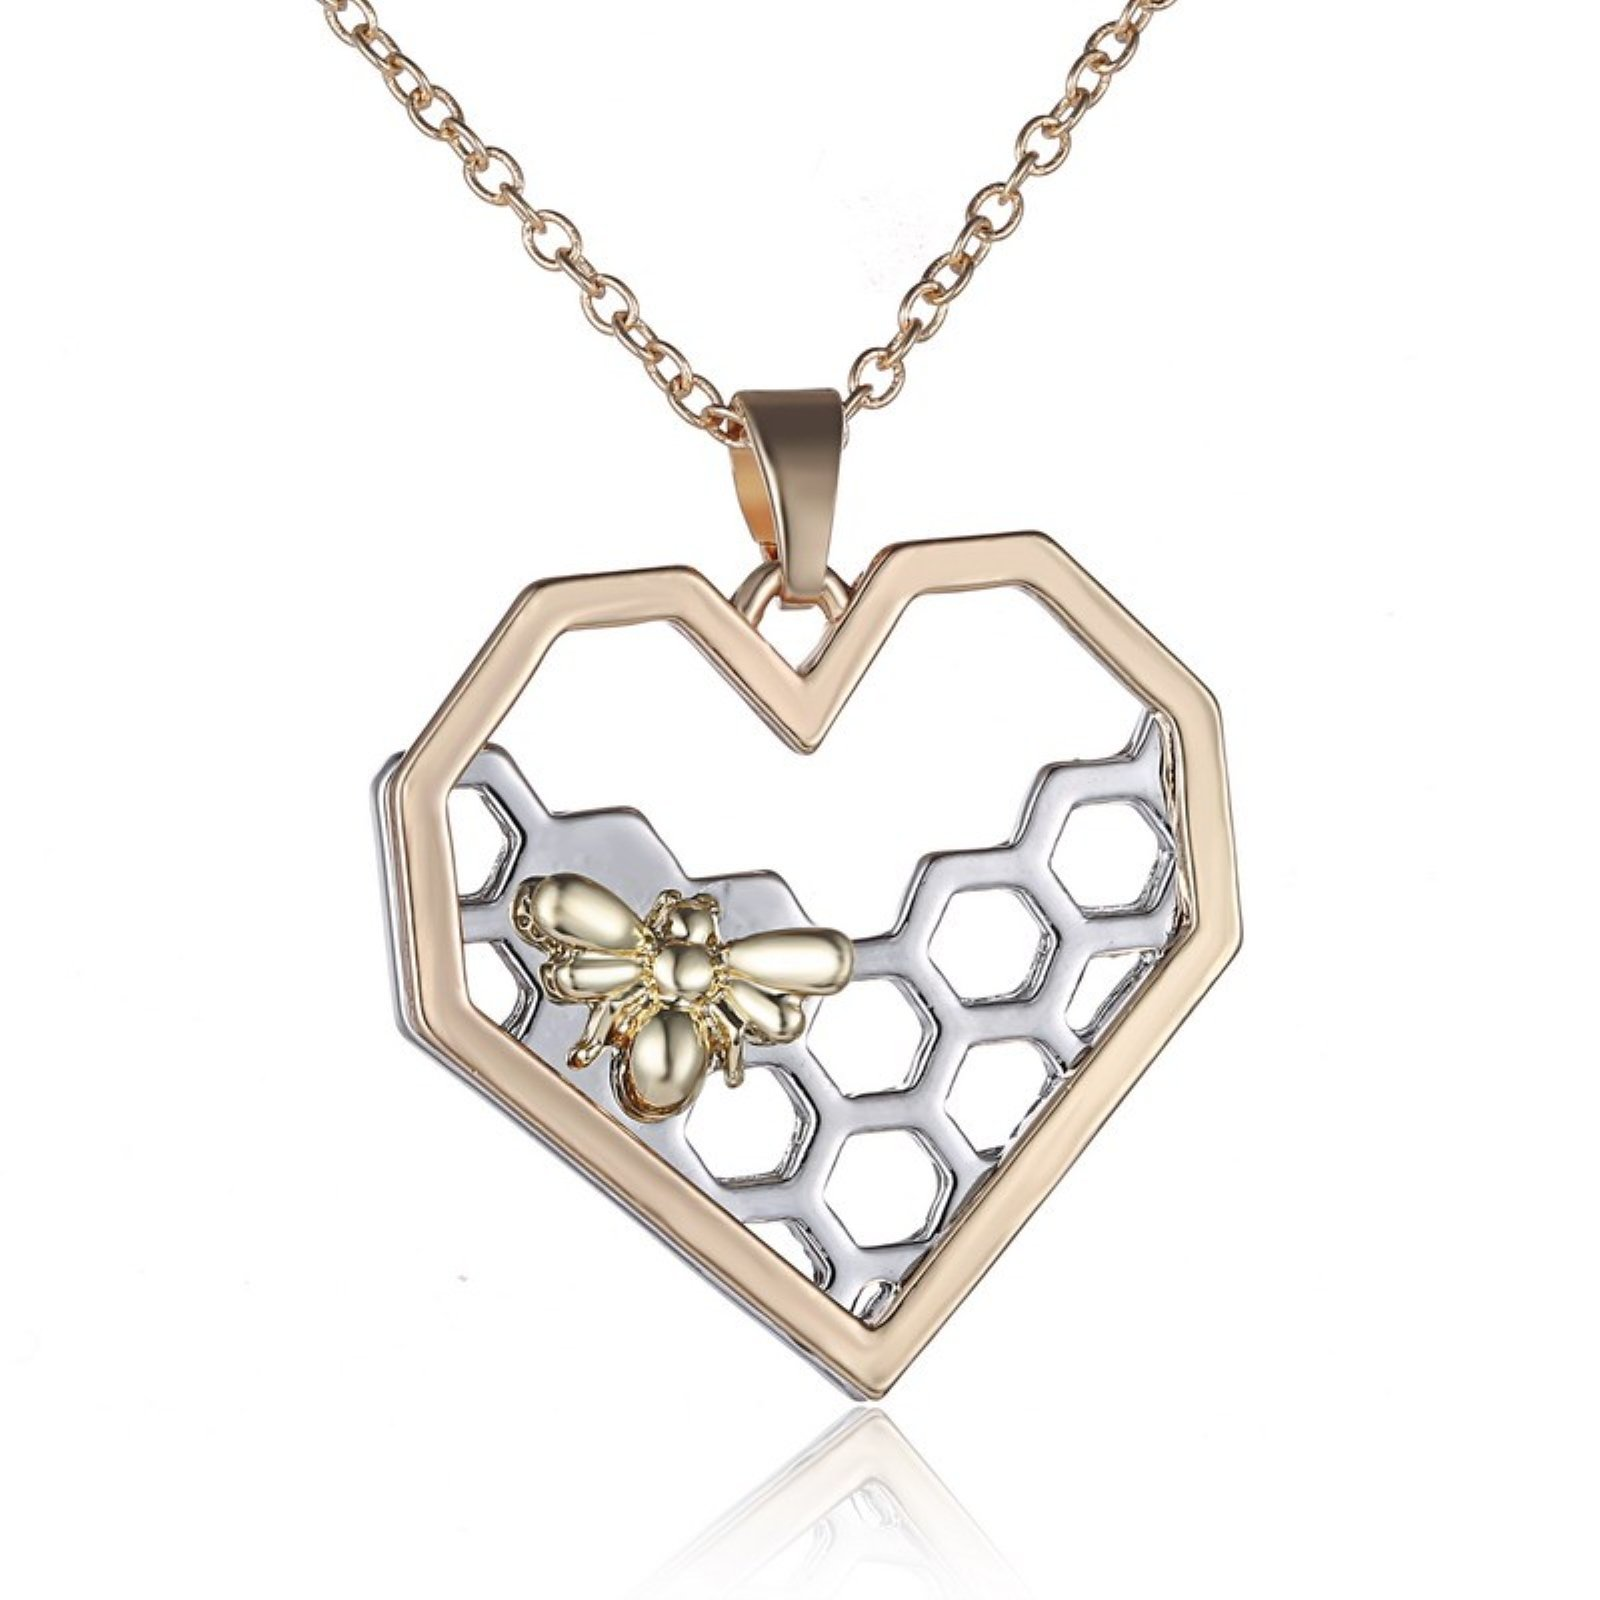 ptk12 Fashion Jewelry Rose Gold Silver gold color Heart Love Pendant Necklace Women Animal